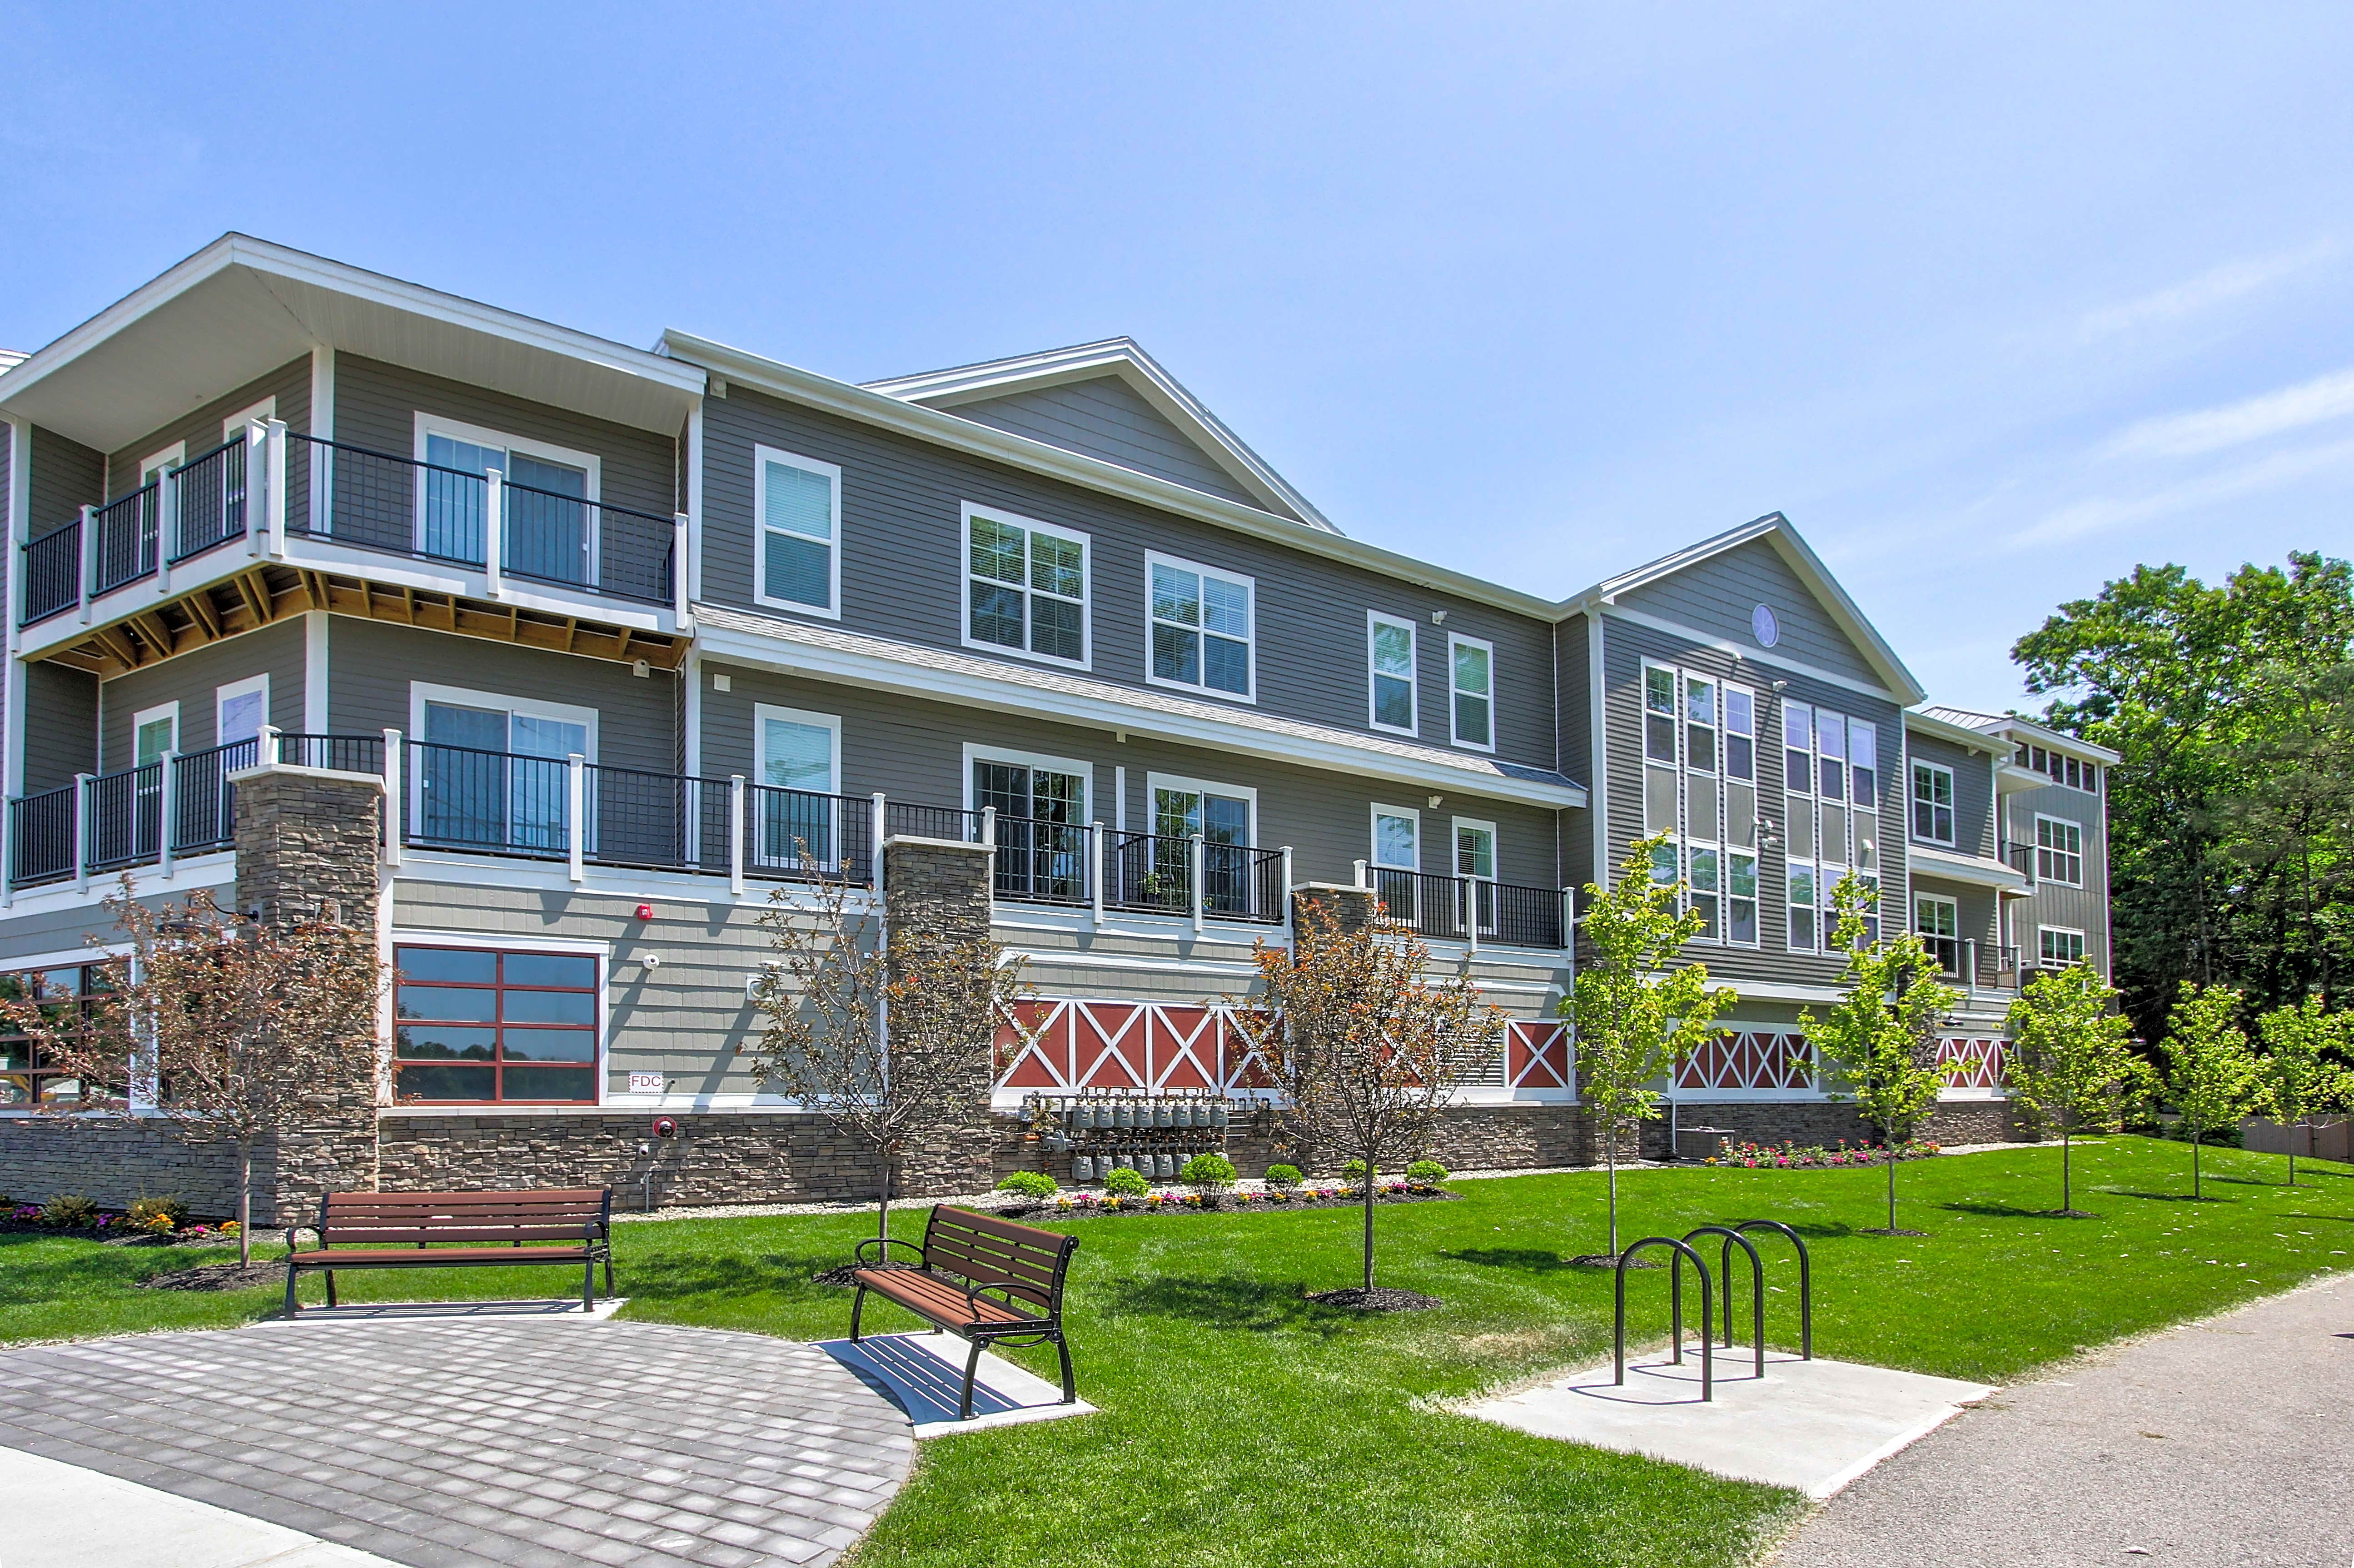 Apartments Near Skidmore 246 W Avenue Apartments for Skidmore College Students in Saratoga Springs, NY